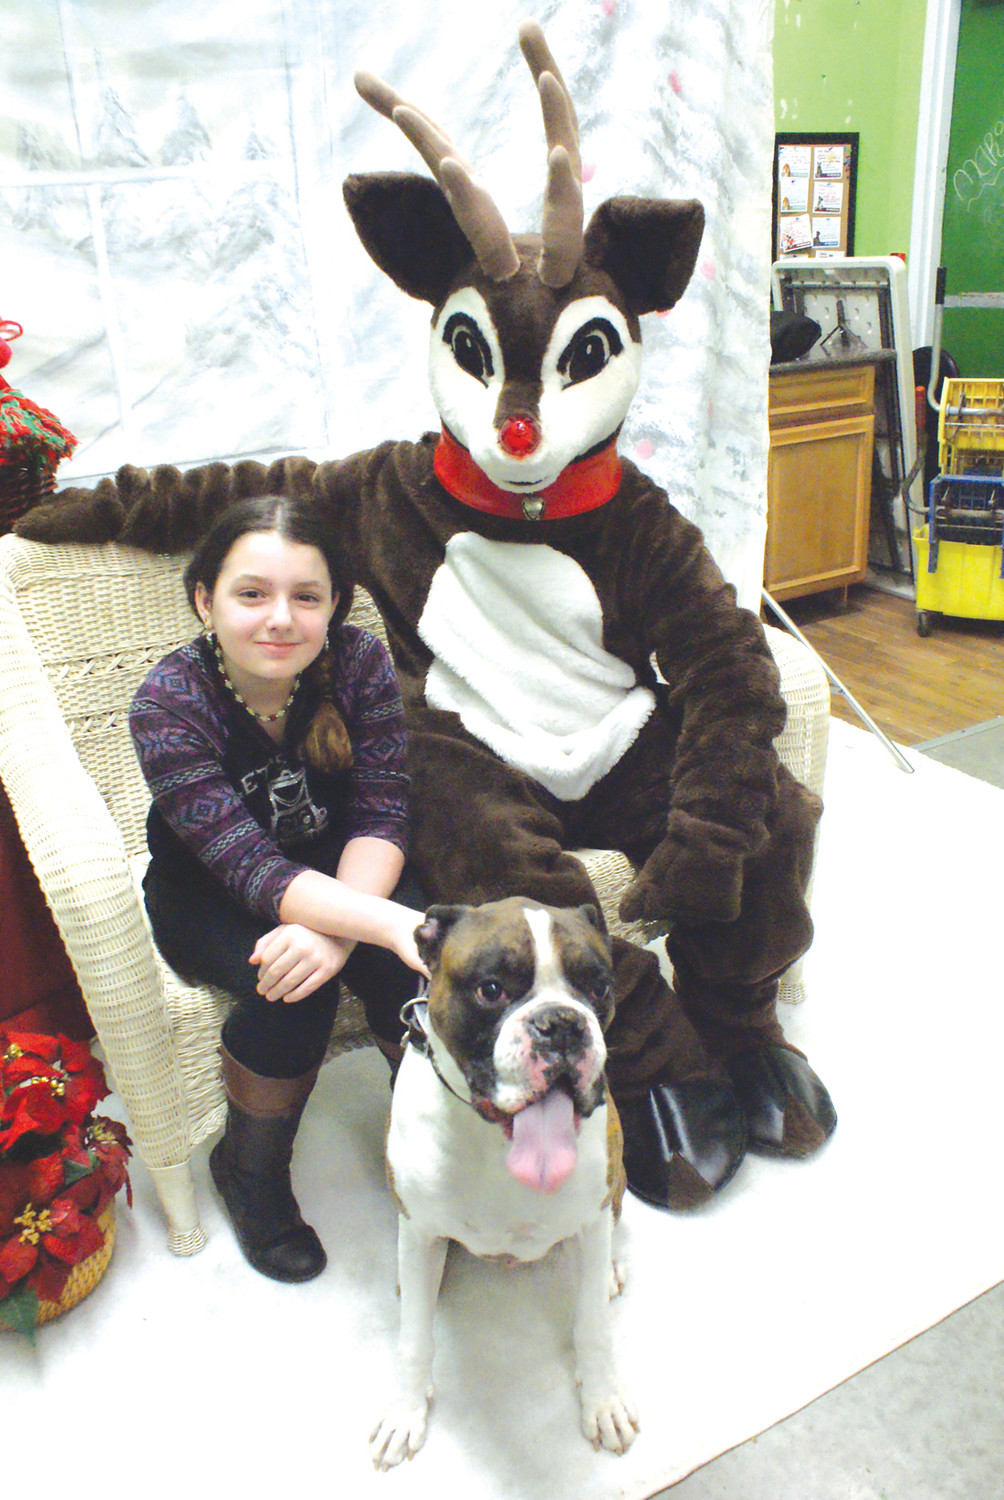 THE ONE AND ONLY: Pictured with Rudolph the Red Nosed Reindeer was Italia Antonelli, age 9 with her 6-year-old boxer named Mugsy during the Holiday Photos at Pet Supplies Plus in Garden City to benefit Animals Depend On People Too, Inc. (A.D.O.P.T.).